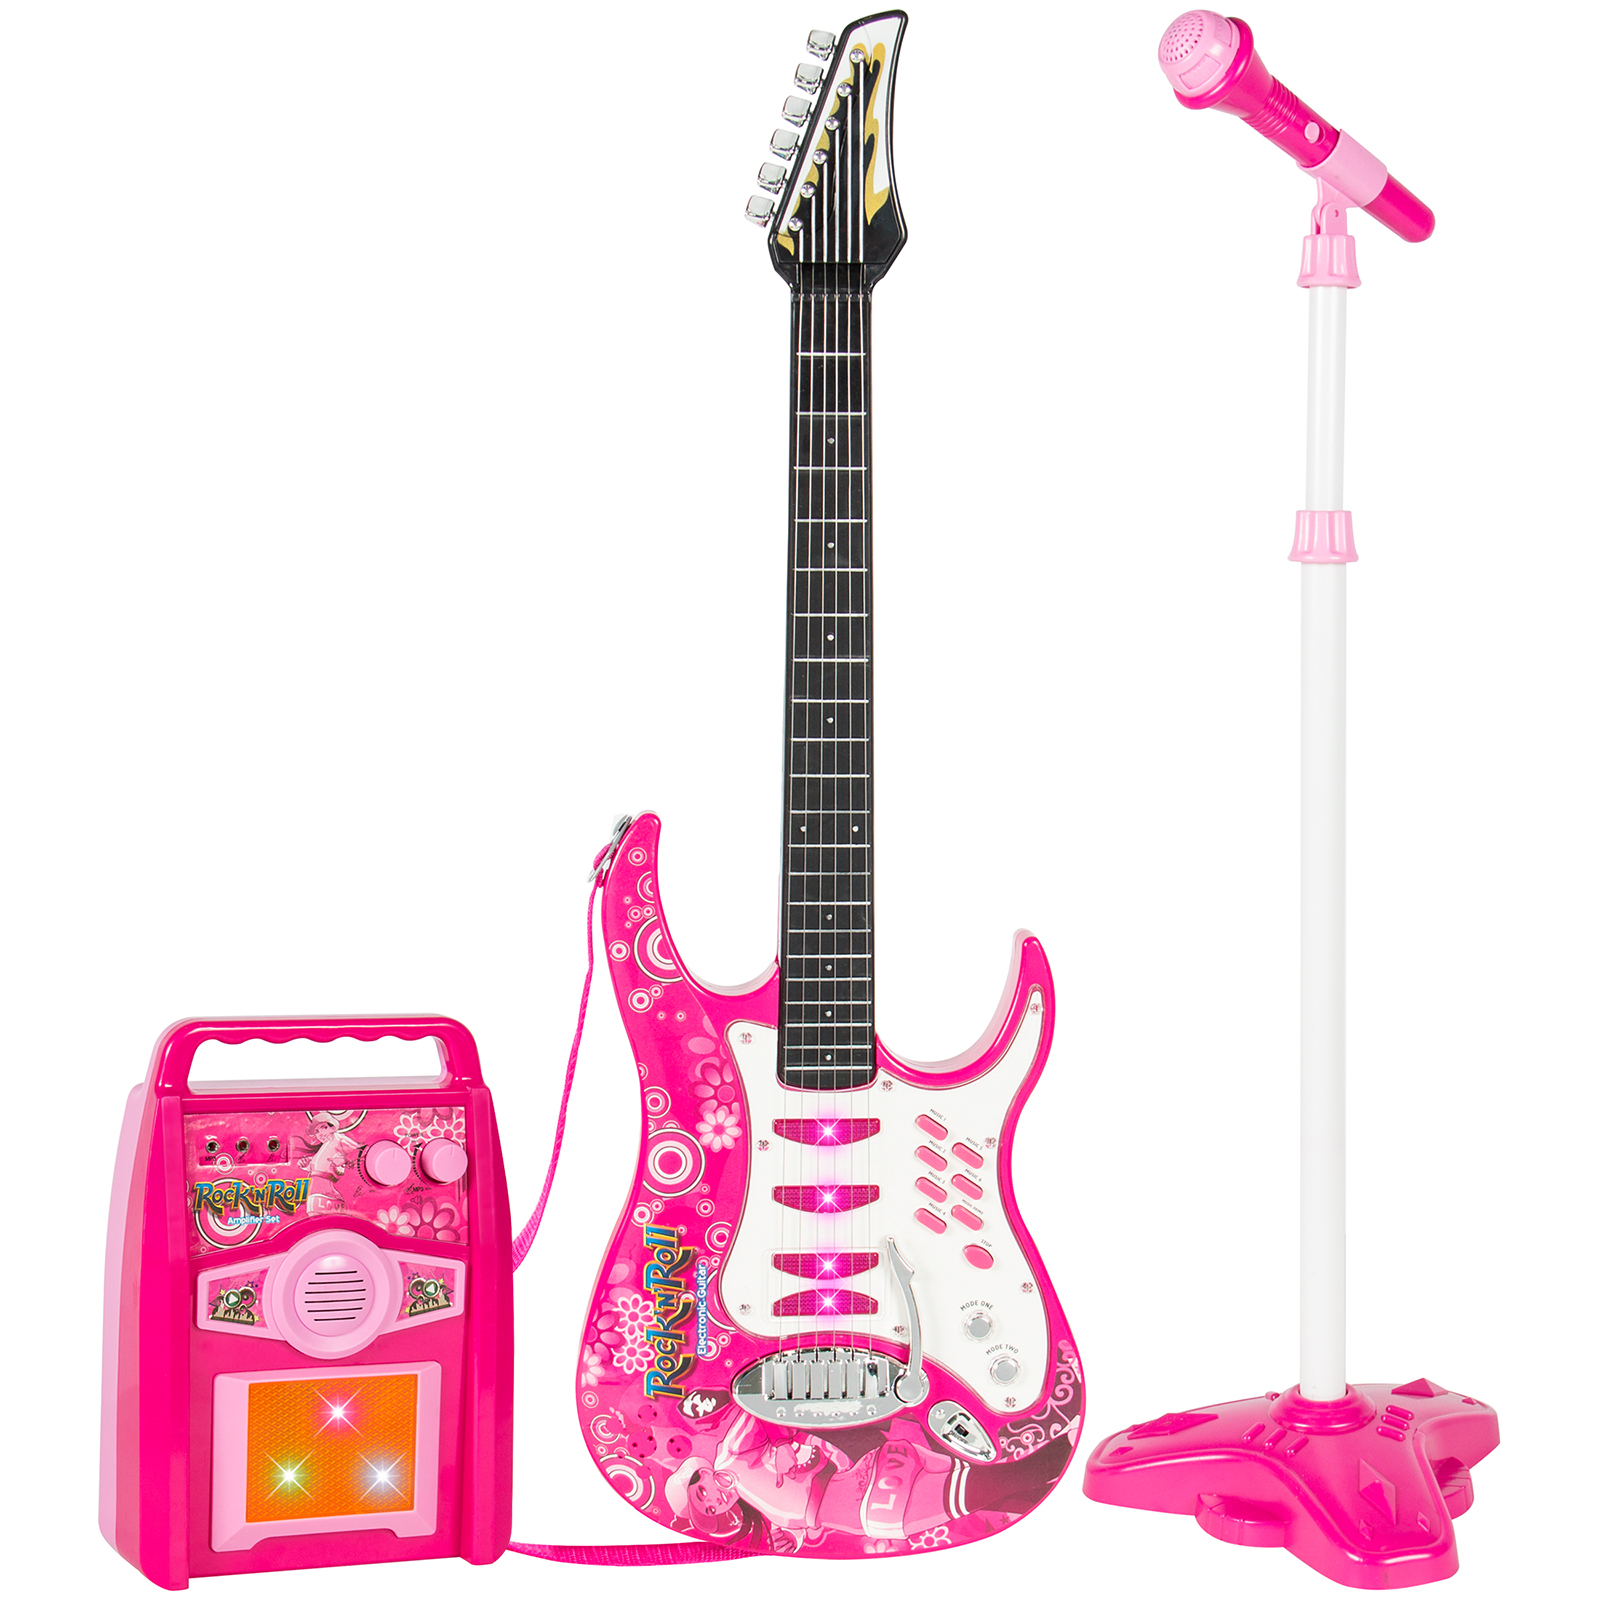 Best Choice Products Kids Electric Musical Guitar Play Set w/ Microphone, Aux Cord, Amp - Pink